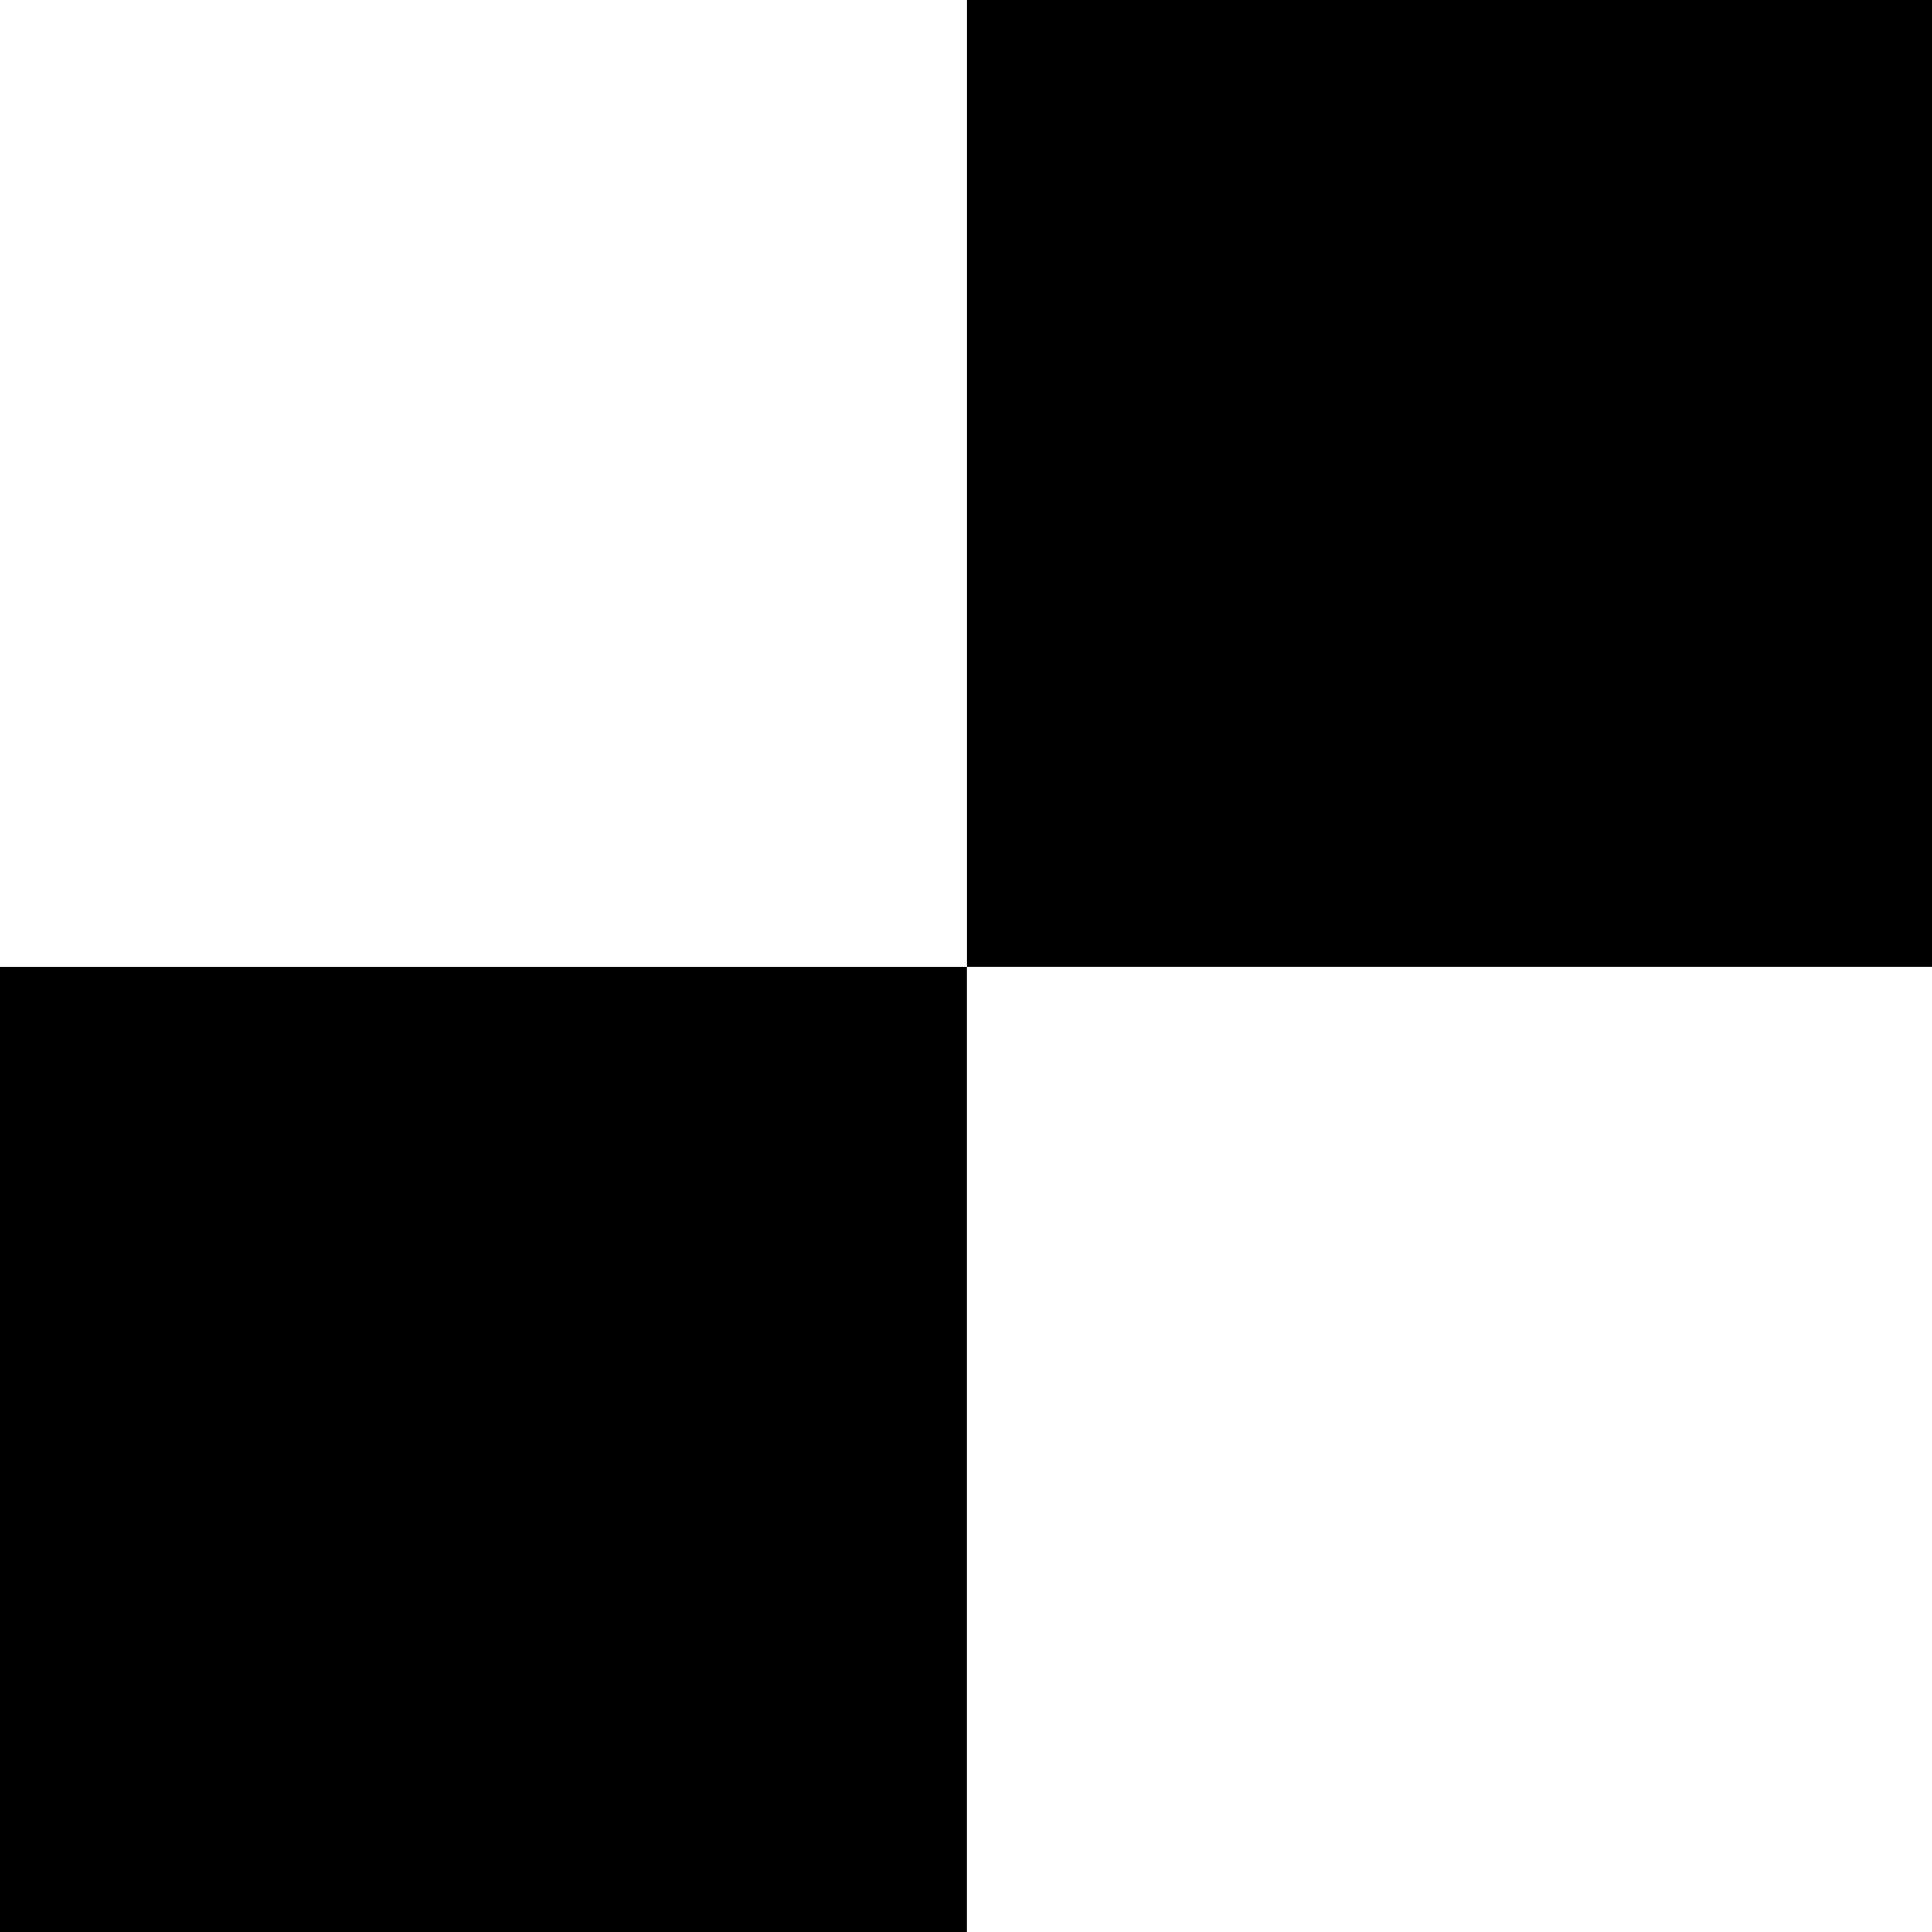 Checkered svg #6, Download drawings